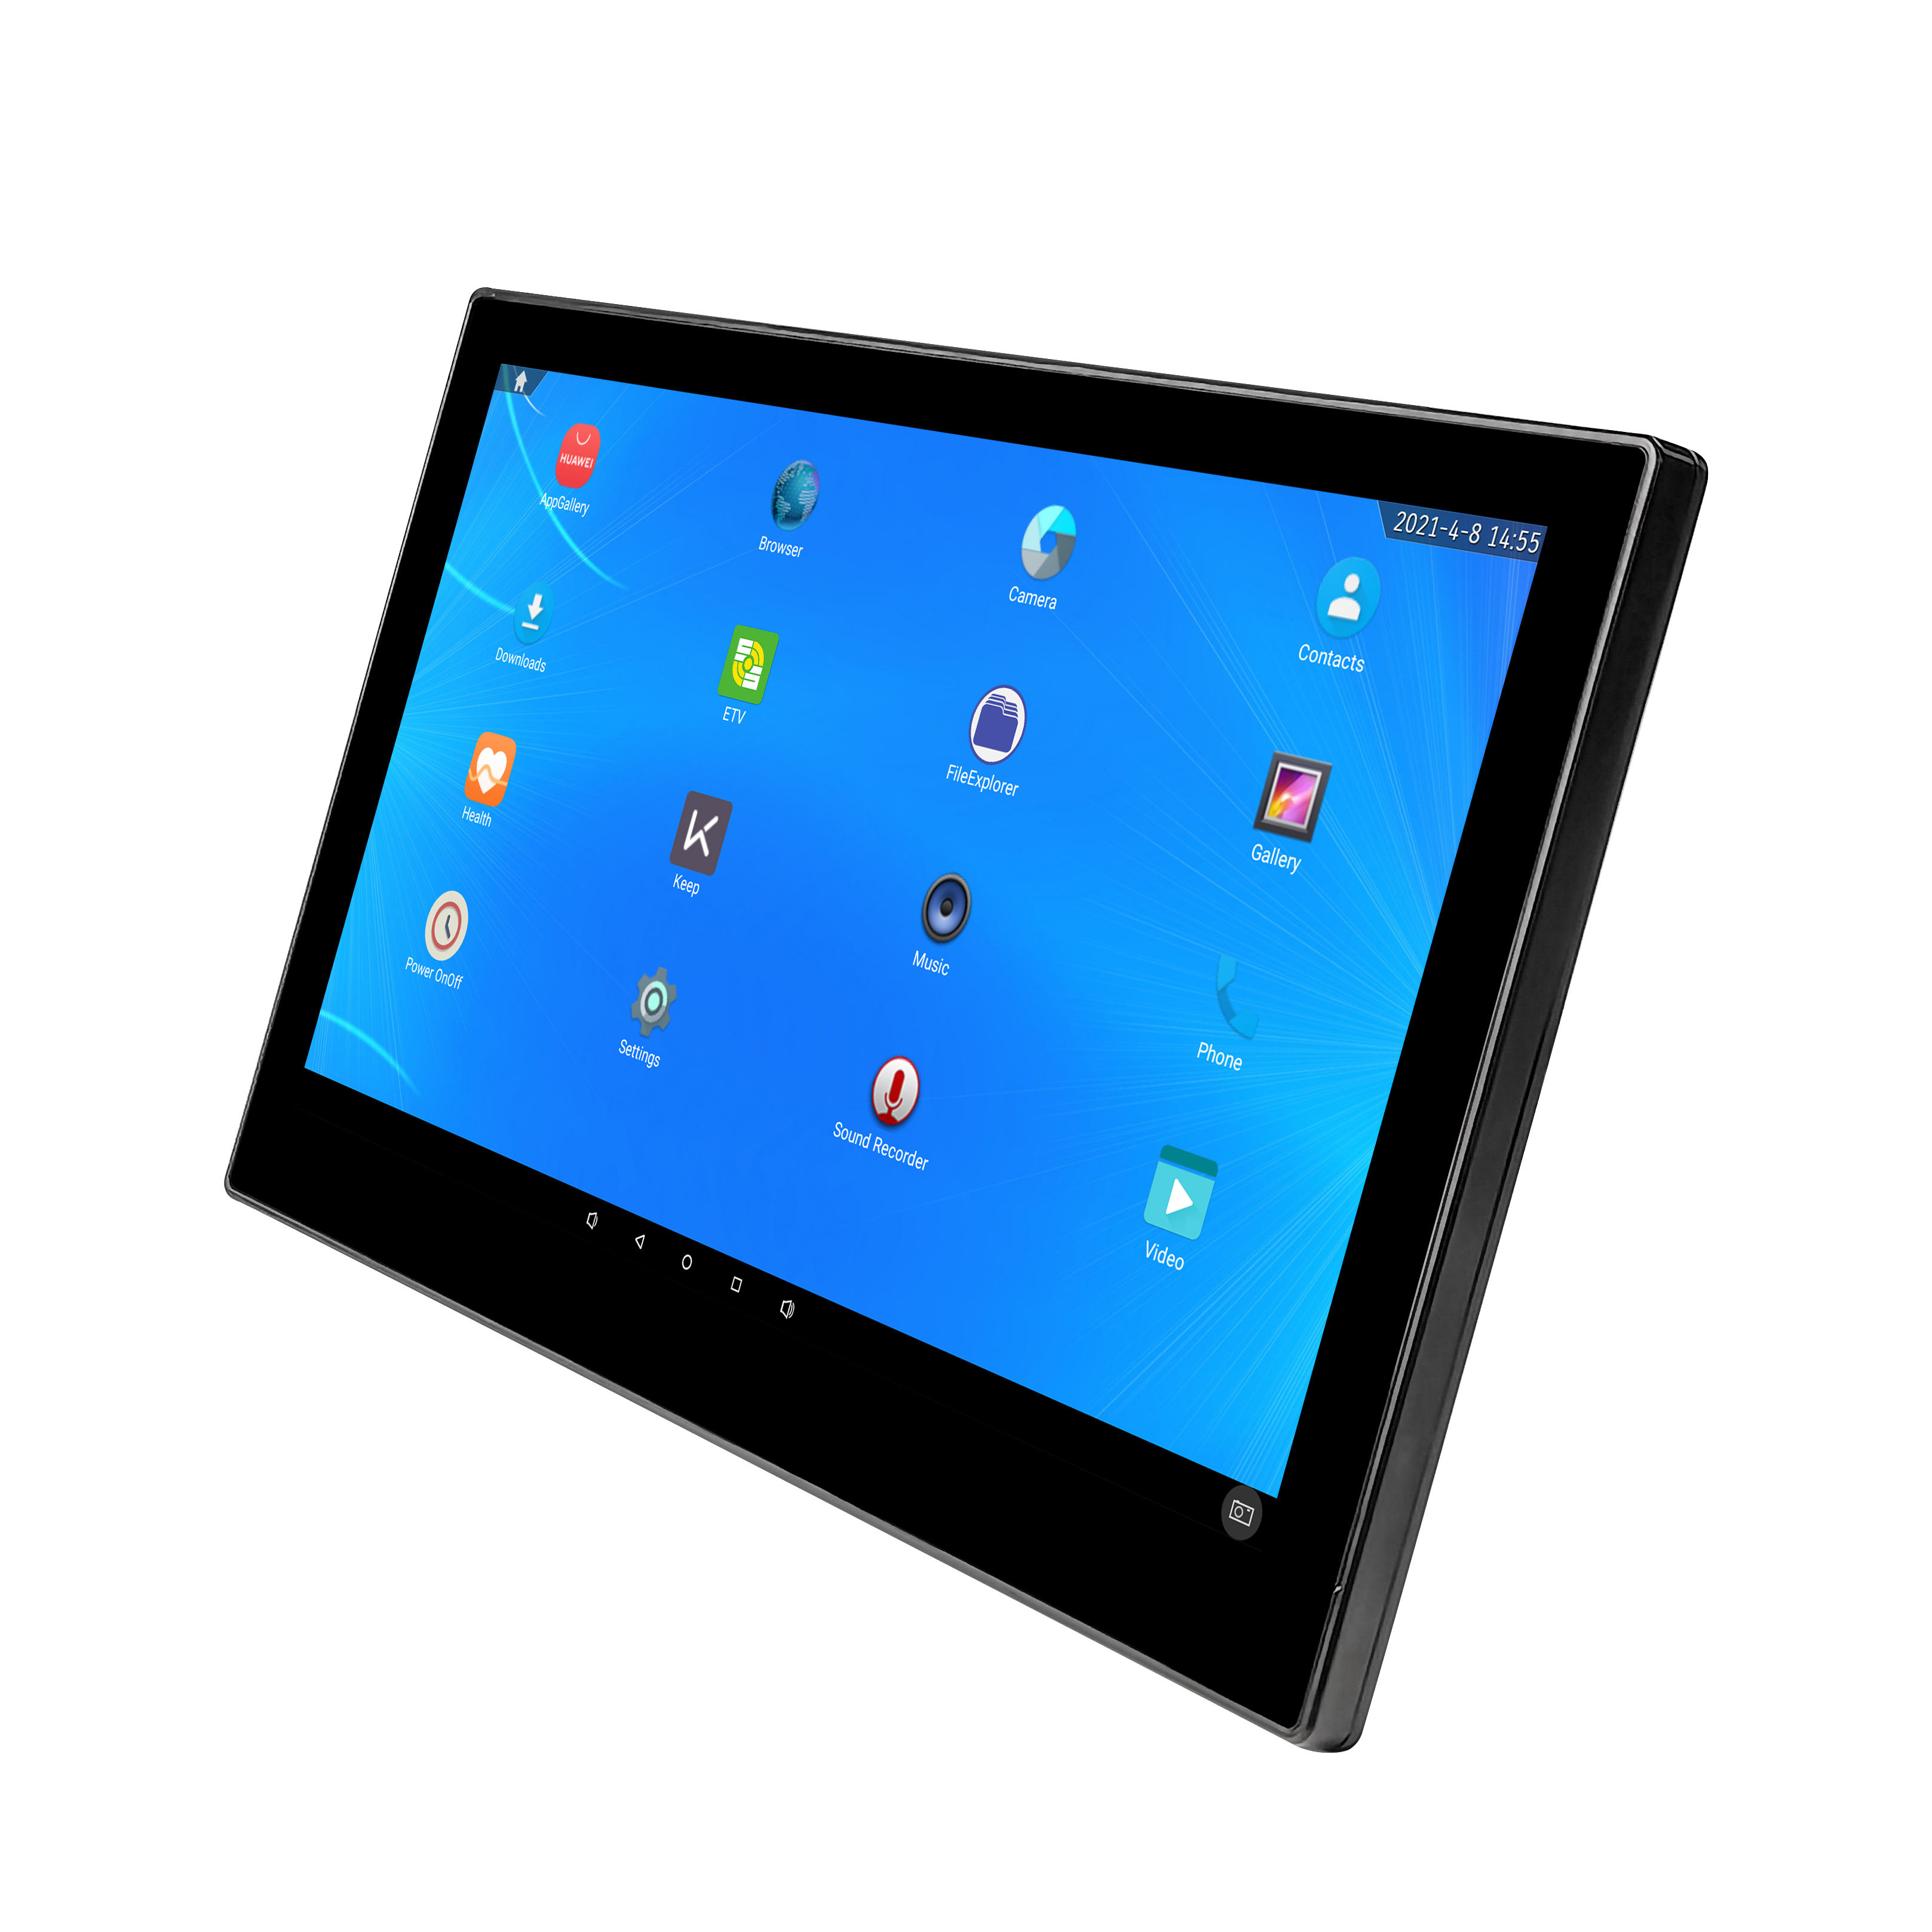 Industriale Computador <span class=keywords><strong>Notebook</strong></span> Da 13.3 Pollici Android All-In-One PC Embed Capacitivo <span class=keywords><strong>Touch</strong></span> Computer Portatili Del Computer Per Tapis Roulant